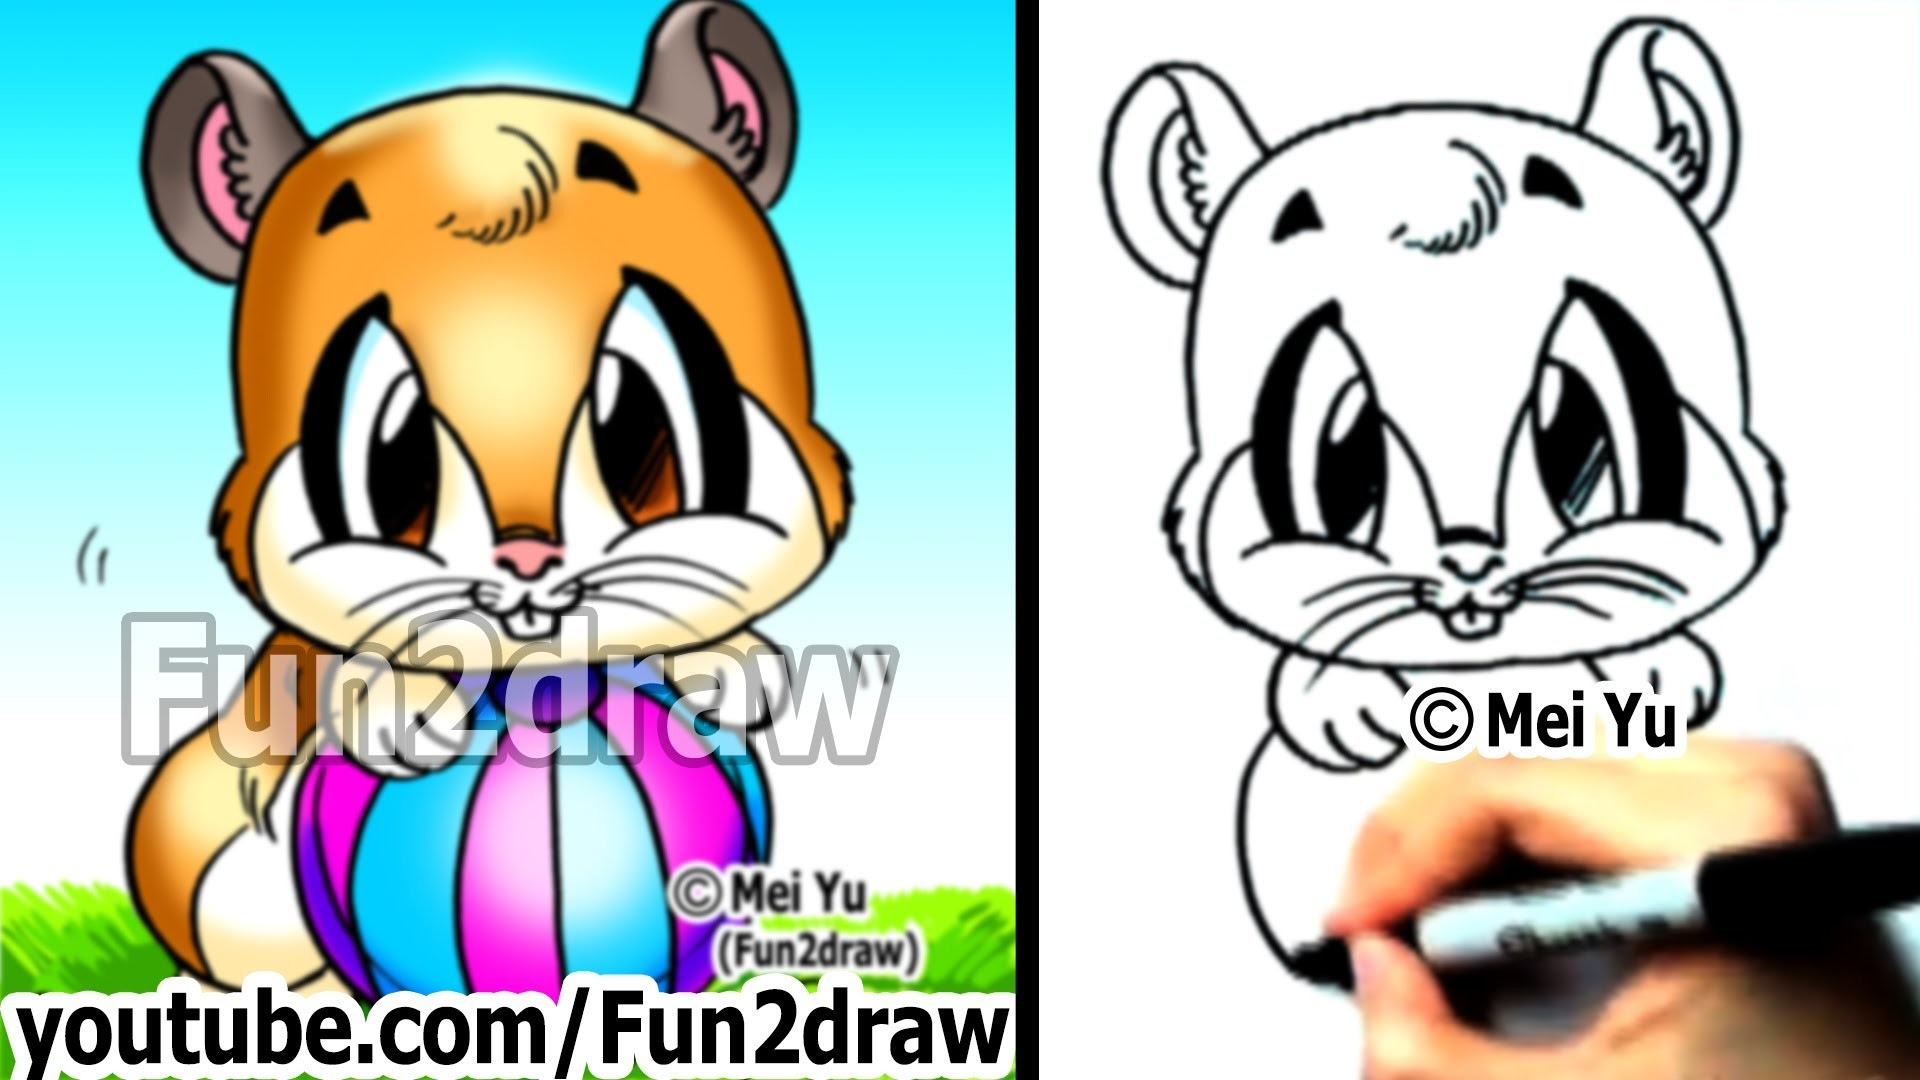 How to Draw a Cartoon Hamster by Mei Yu (Fun2draw) - Easy Drawings - Learn to Draw